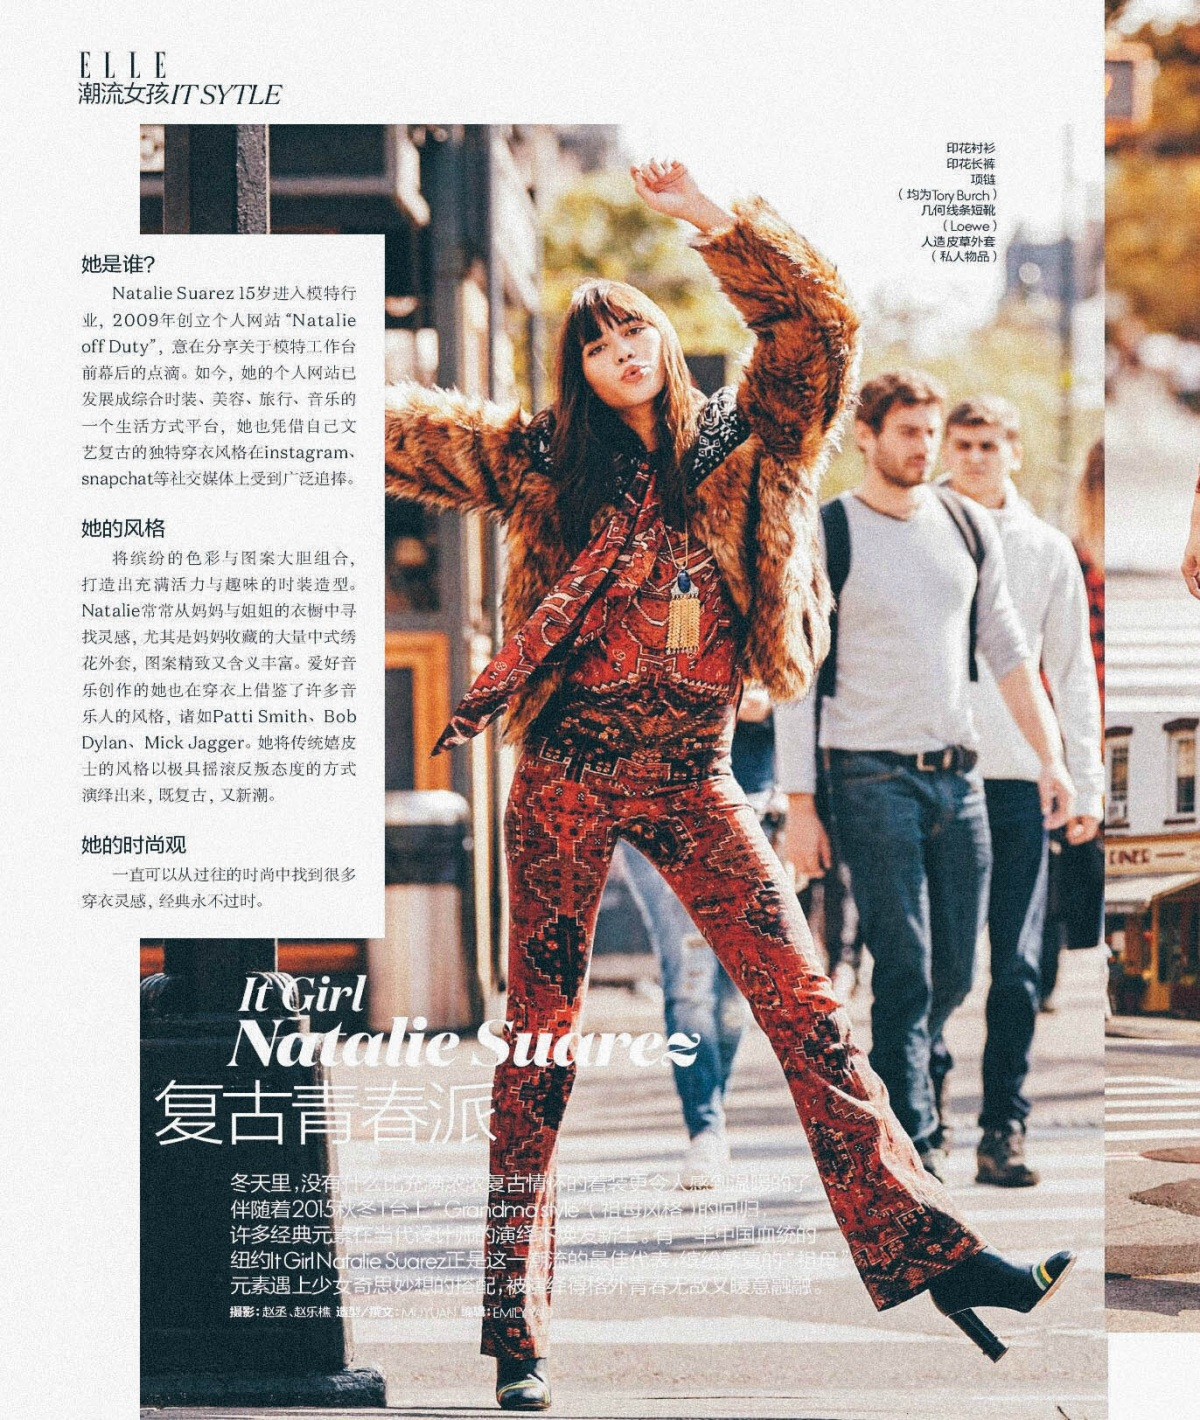 elle-china-natalie-suarez-december-natalie-off-duty-4.jpg